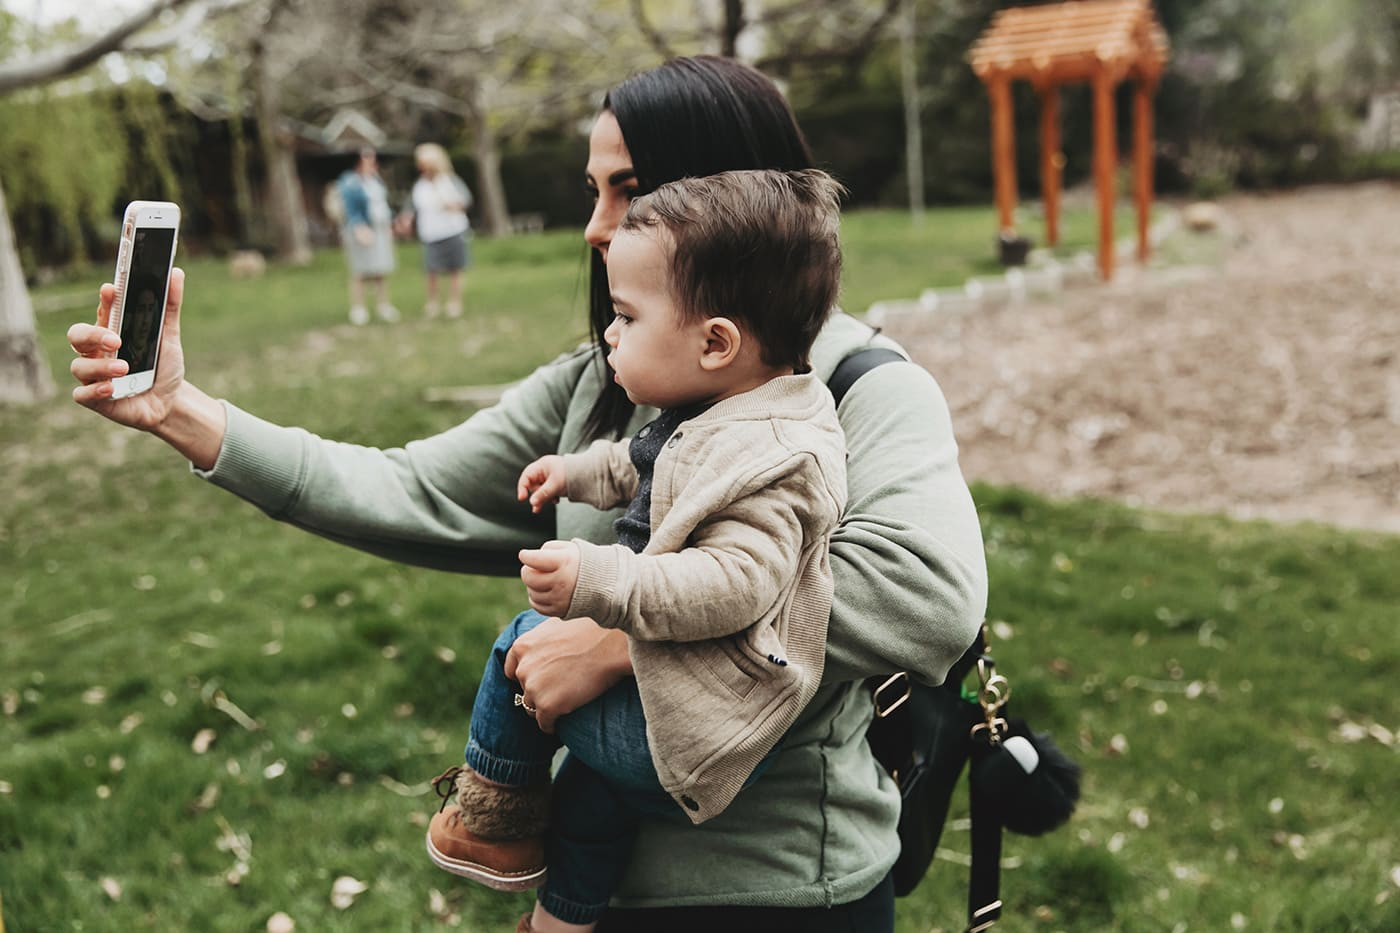 Mother holding toddler son in arms while taking a selfie together in a grassy park